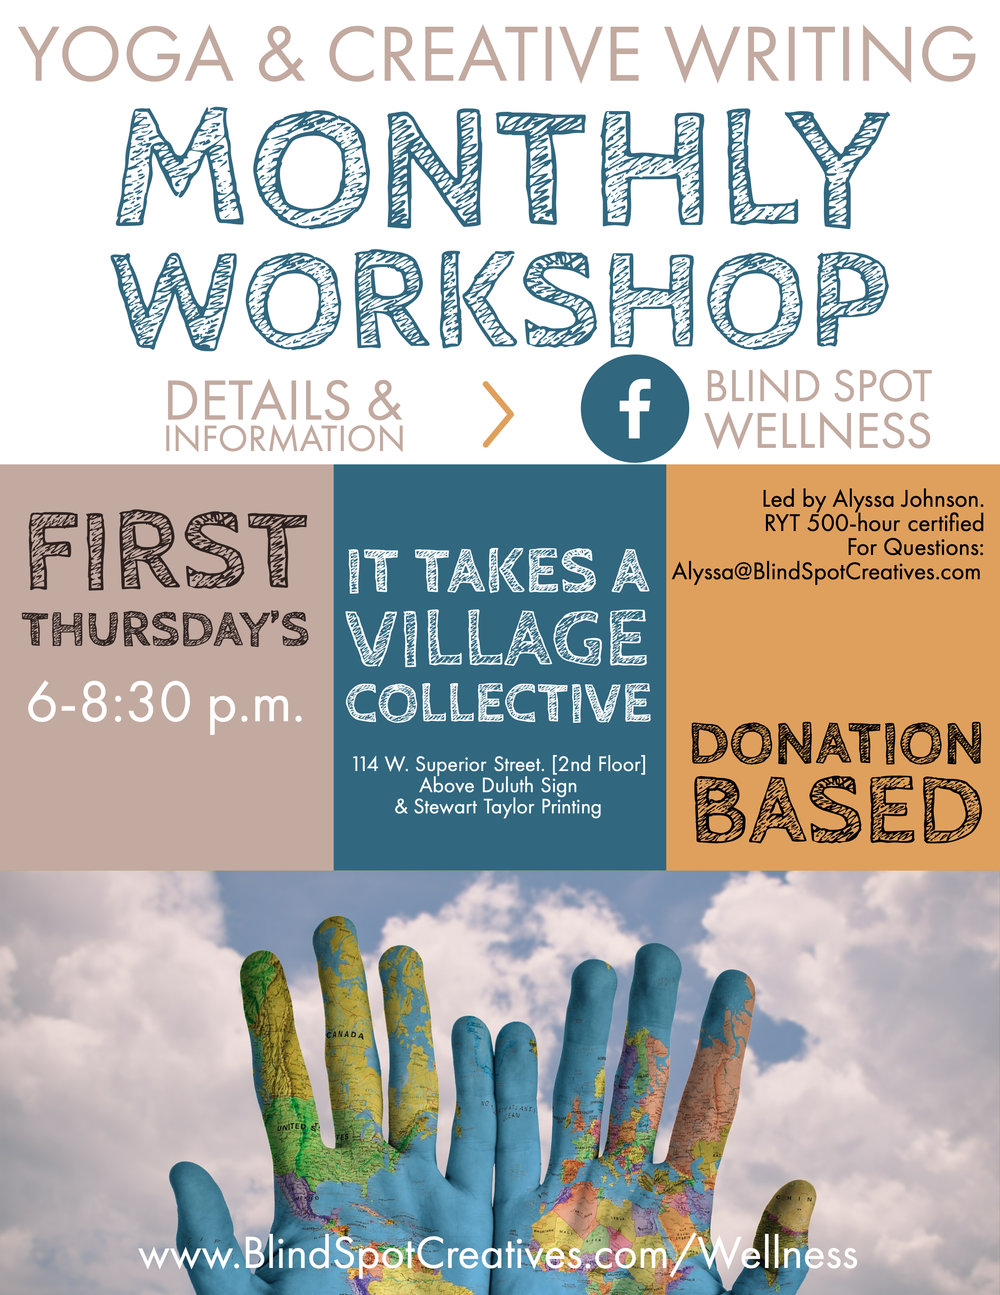 1st Thursday, Duluth, Minnesota. Writing and yoga workshop. Community class. Creativity